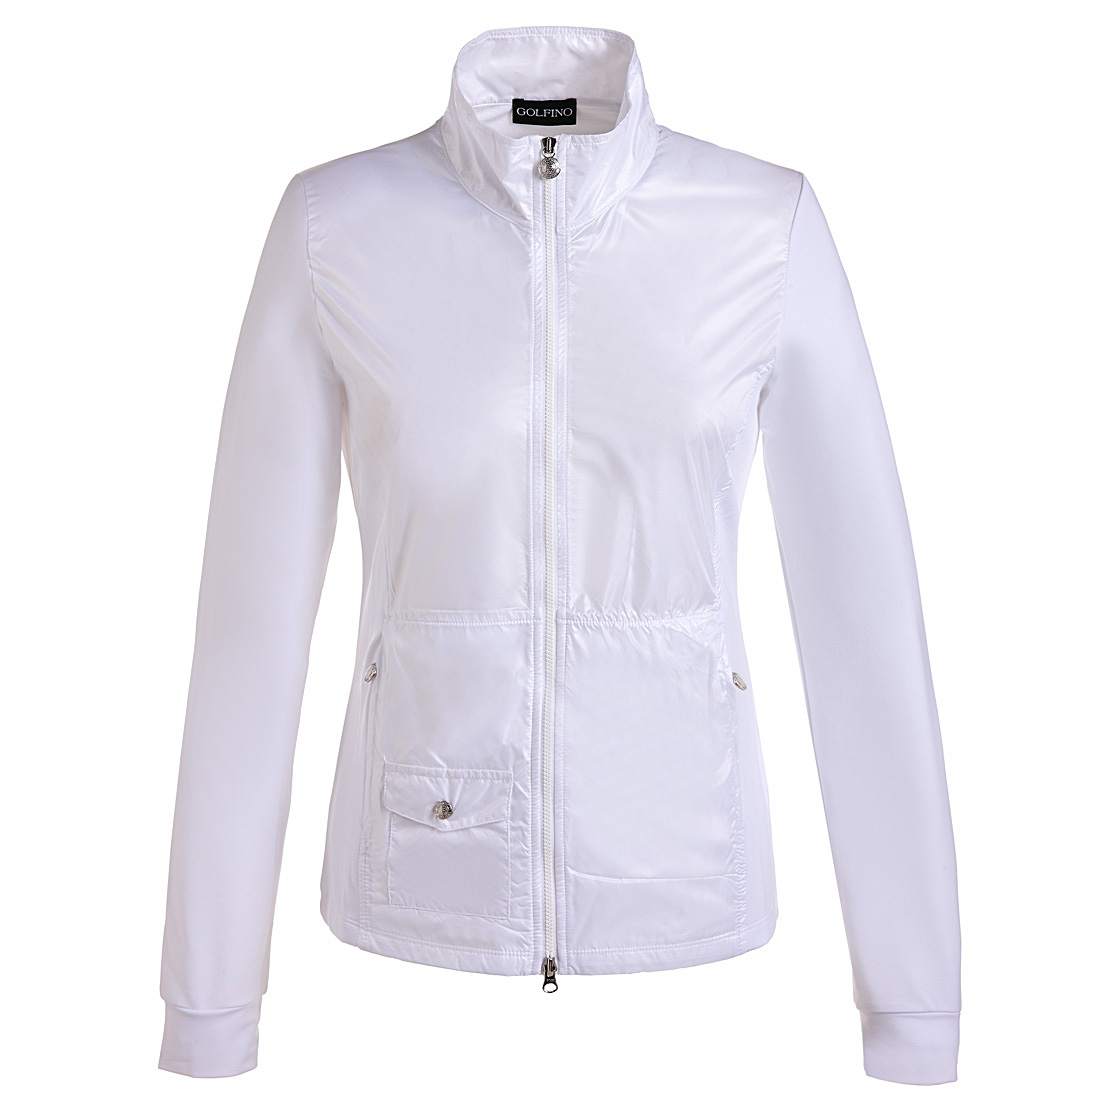 Ladies' stand-up collar jacket